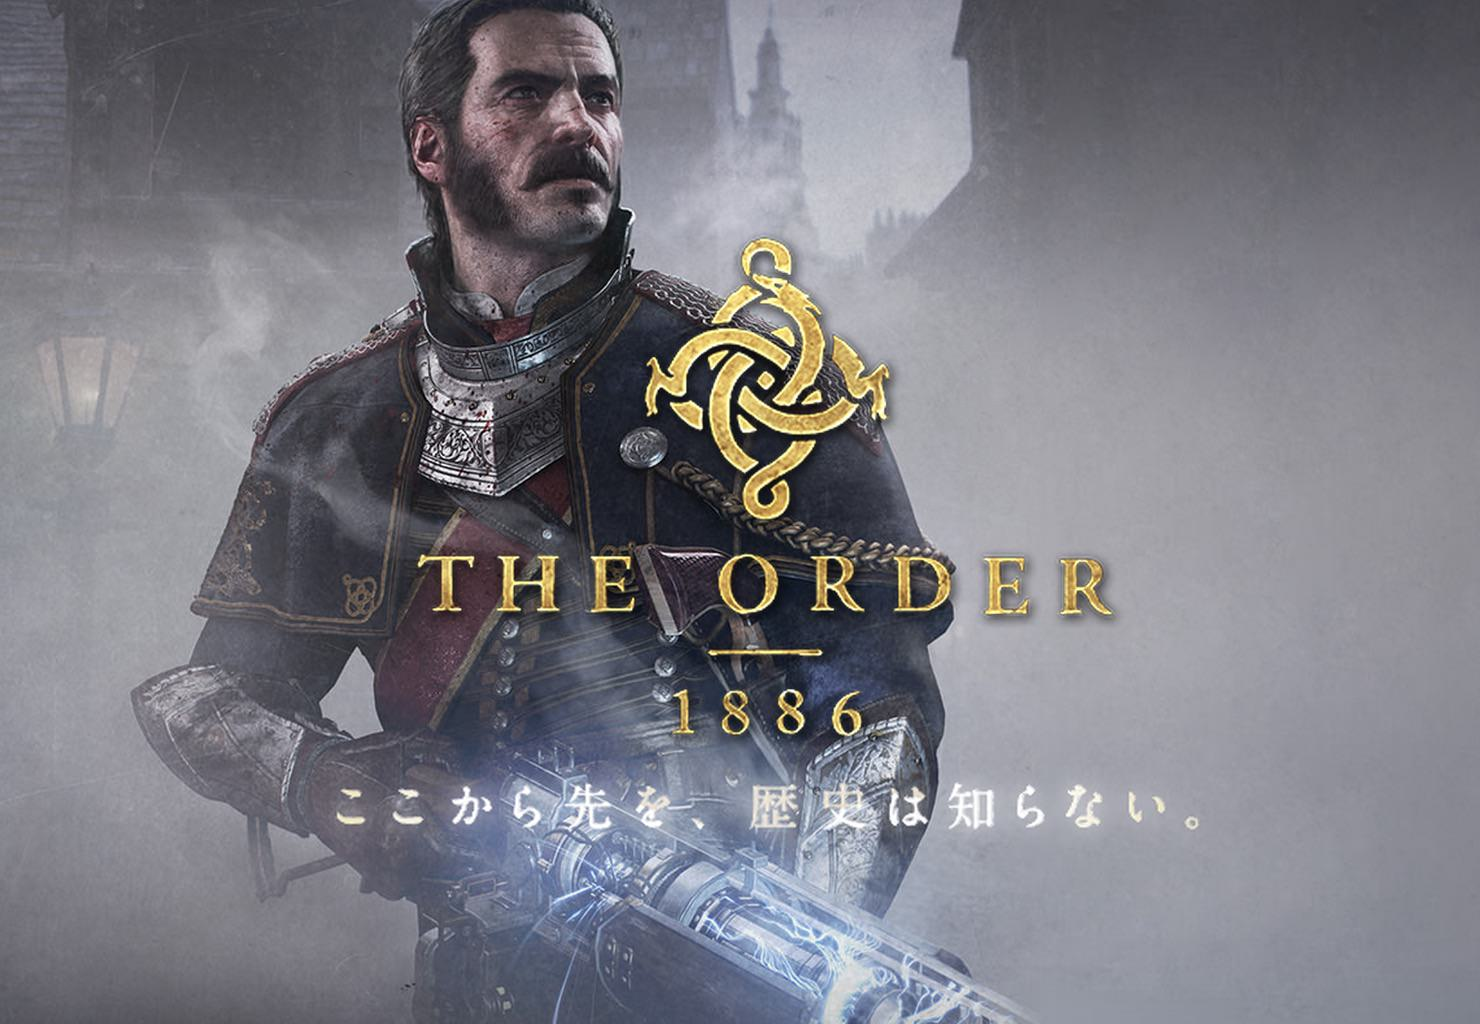 Ps4 the order 1886 impression